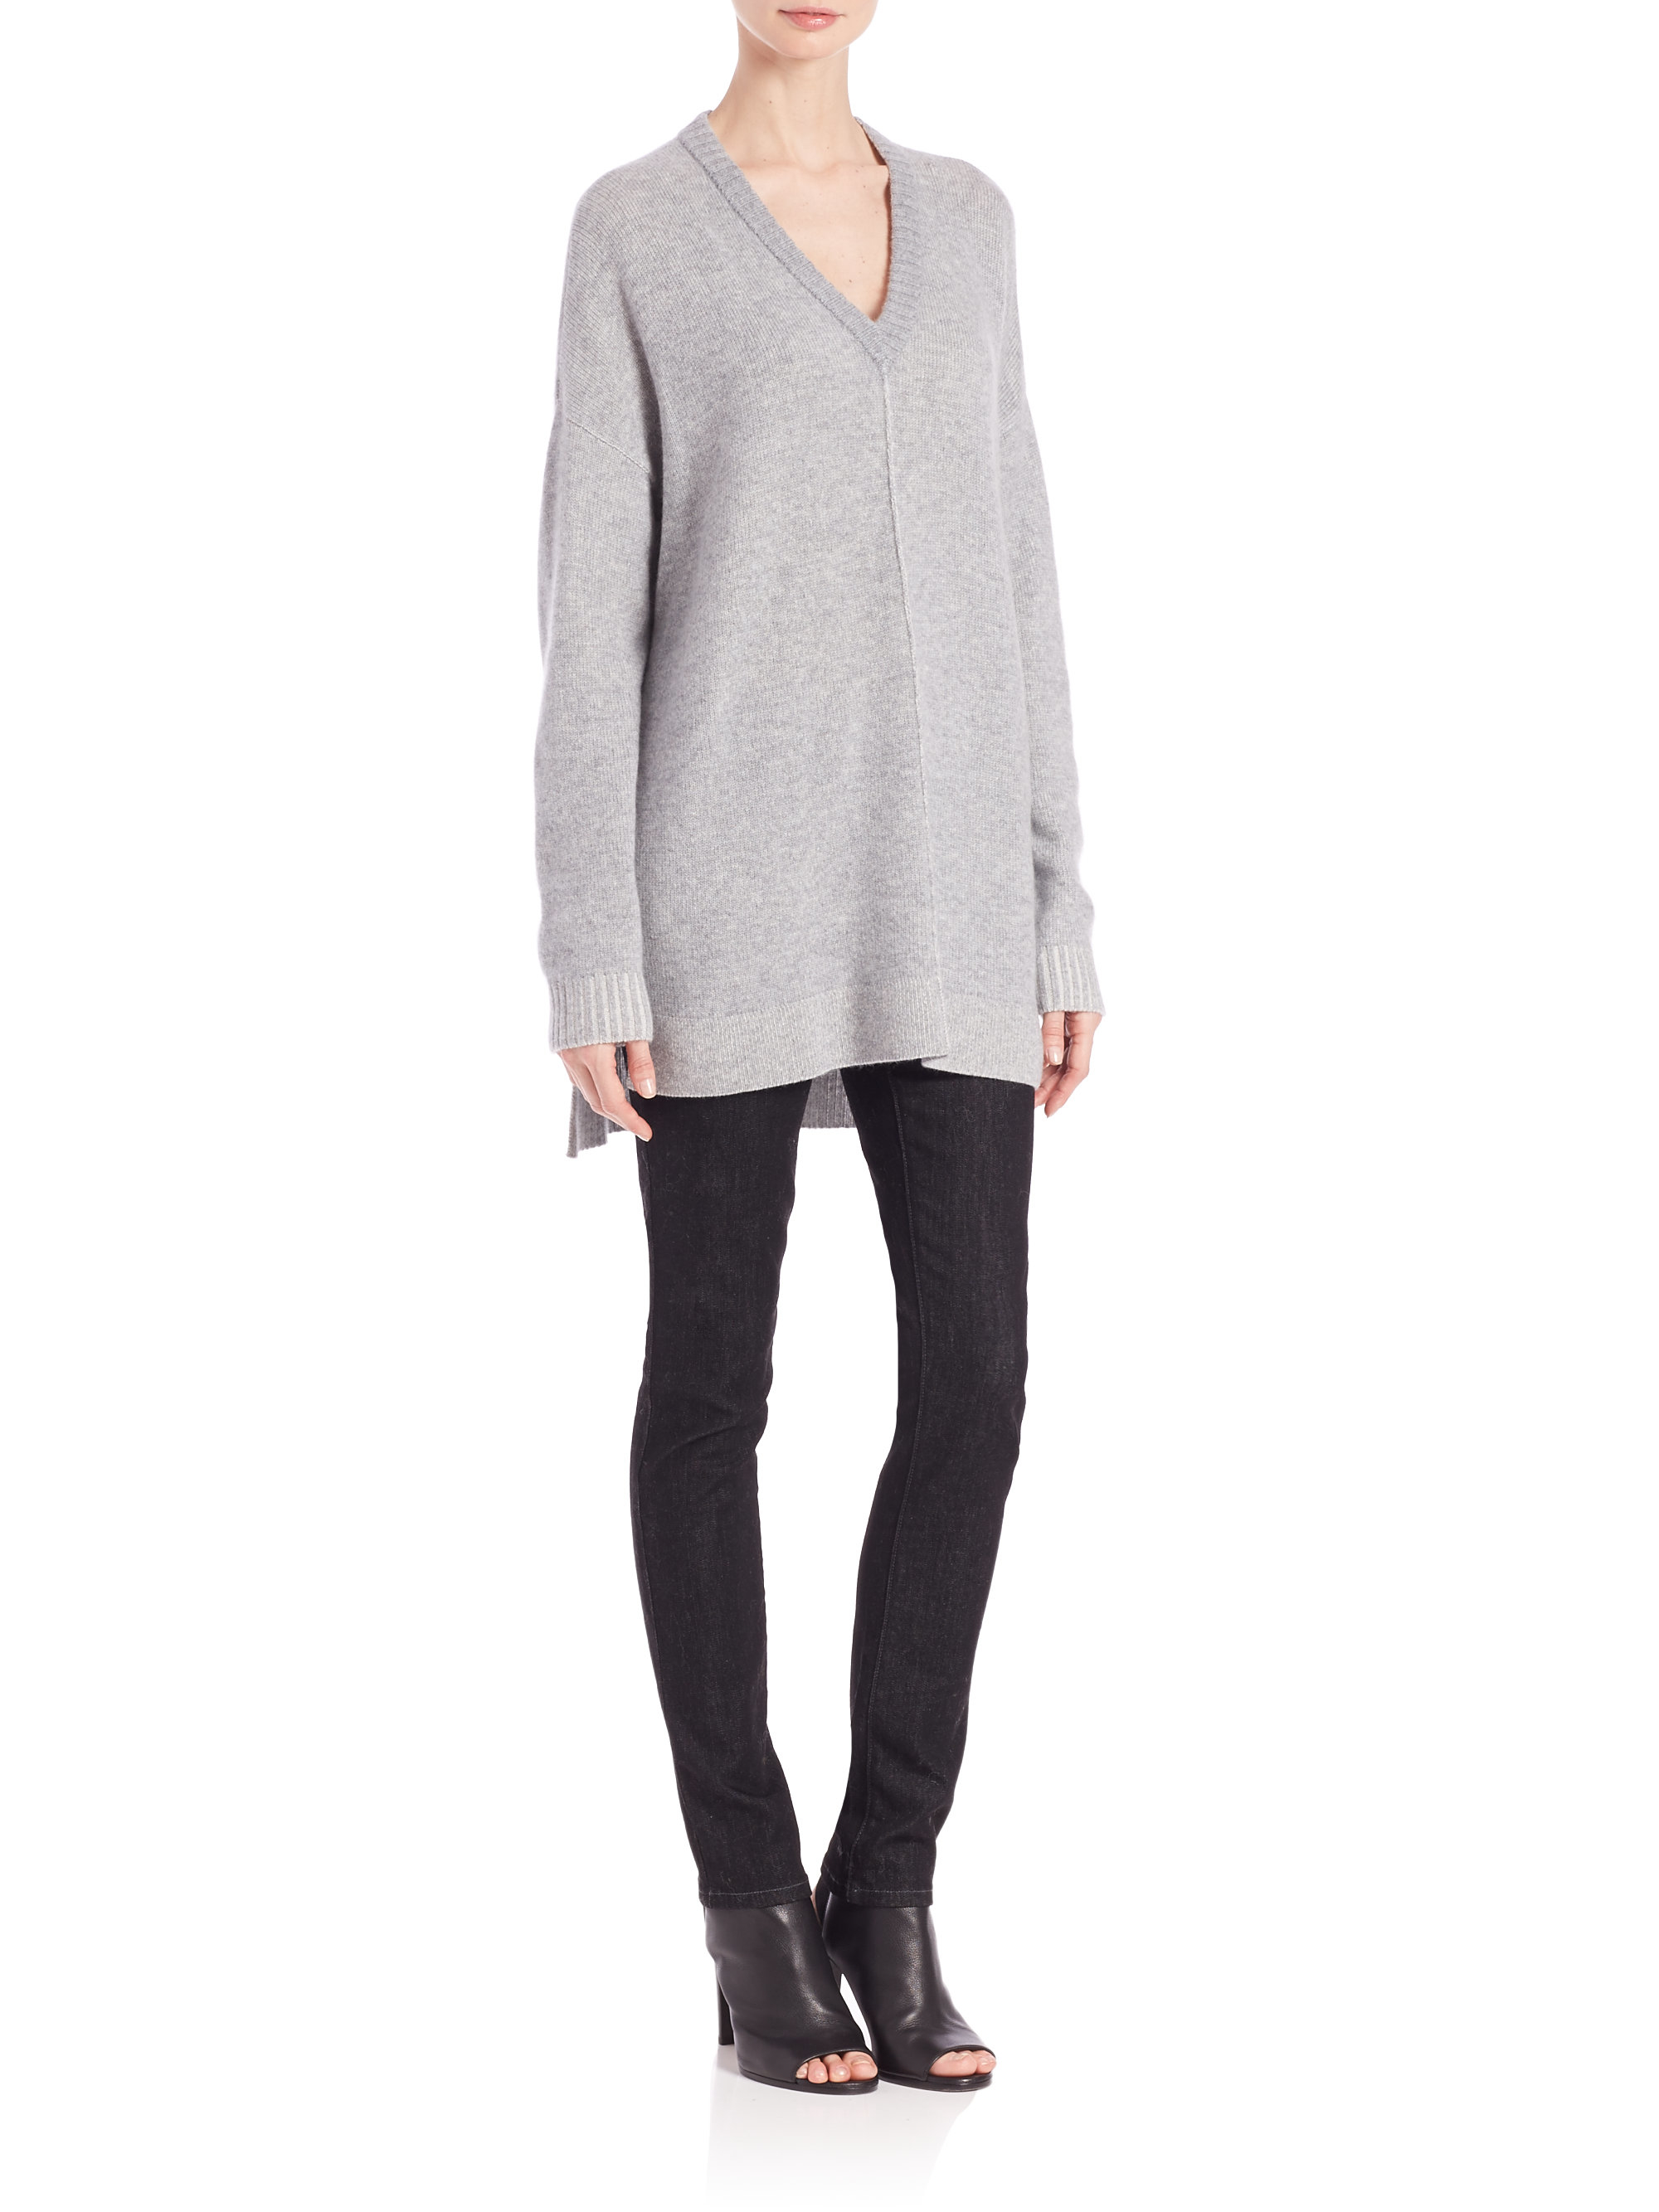 33bd1ce5fa2 Eileen Fisher Plaited Cashmere Tunic in Gray - Lyst